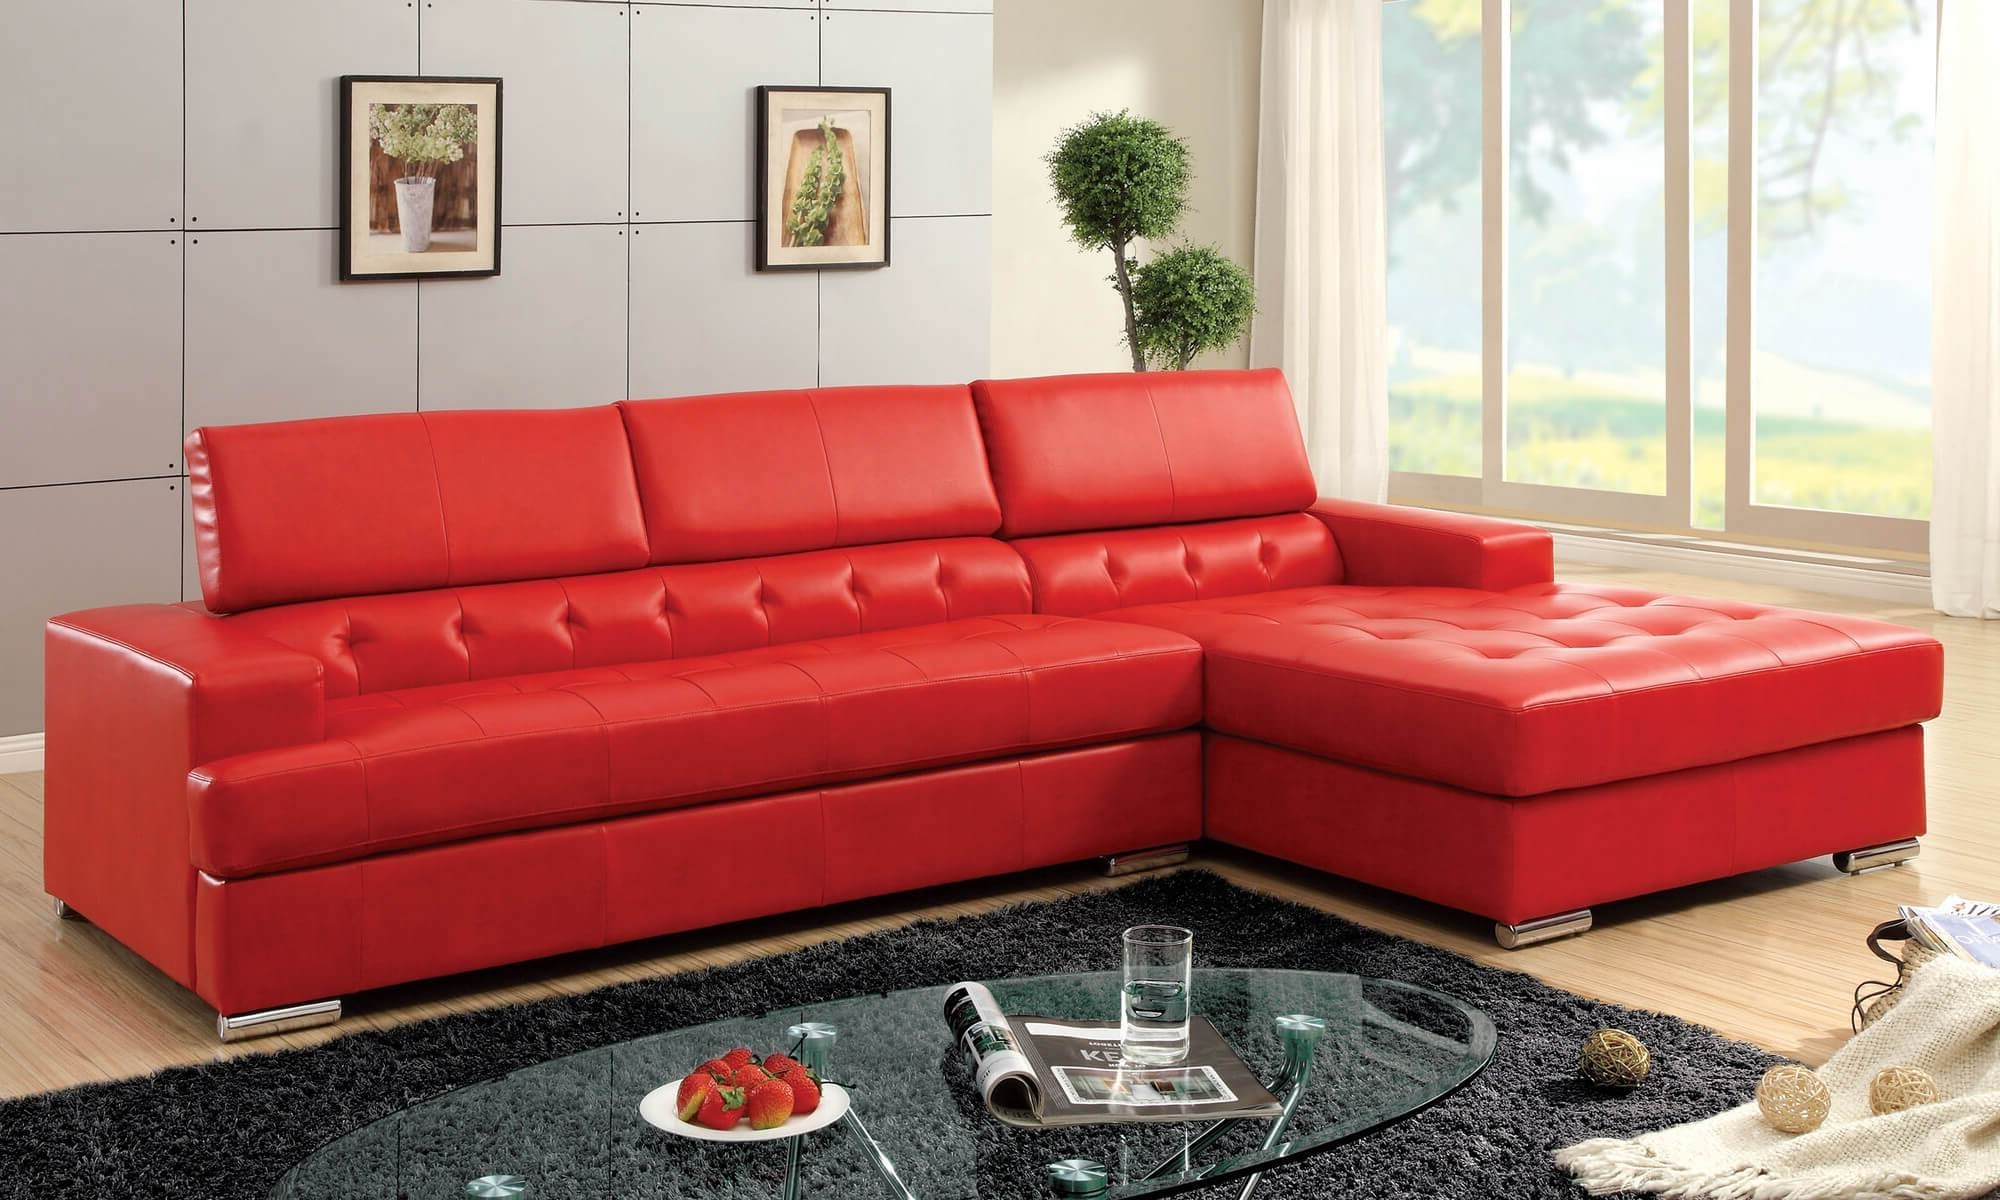 Current Awesome Cheap Red Leather Sofa Plan All About Home Design With Red Leather Couches (View 8 of 20)